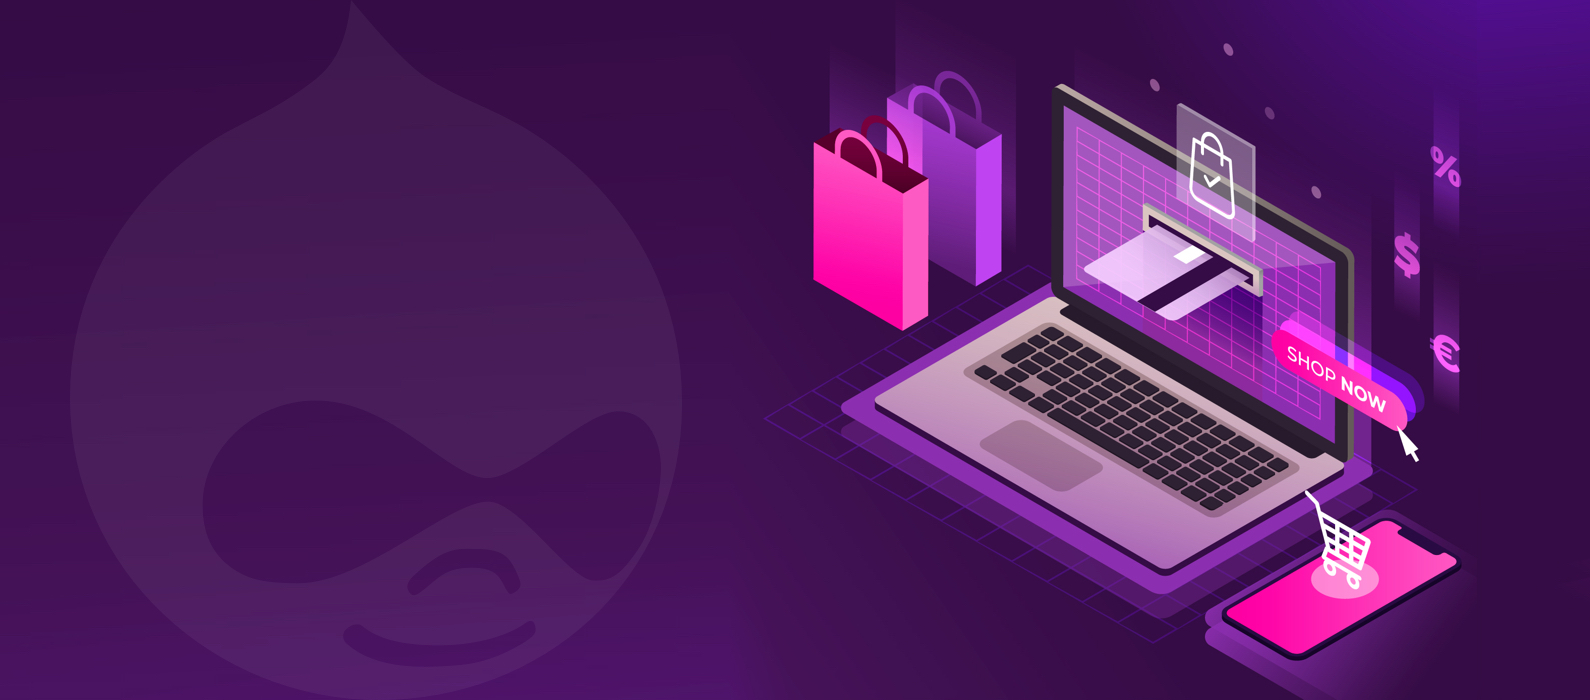 drupal for enterprise ecommerce websites